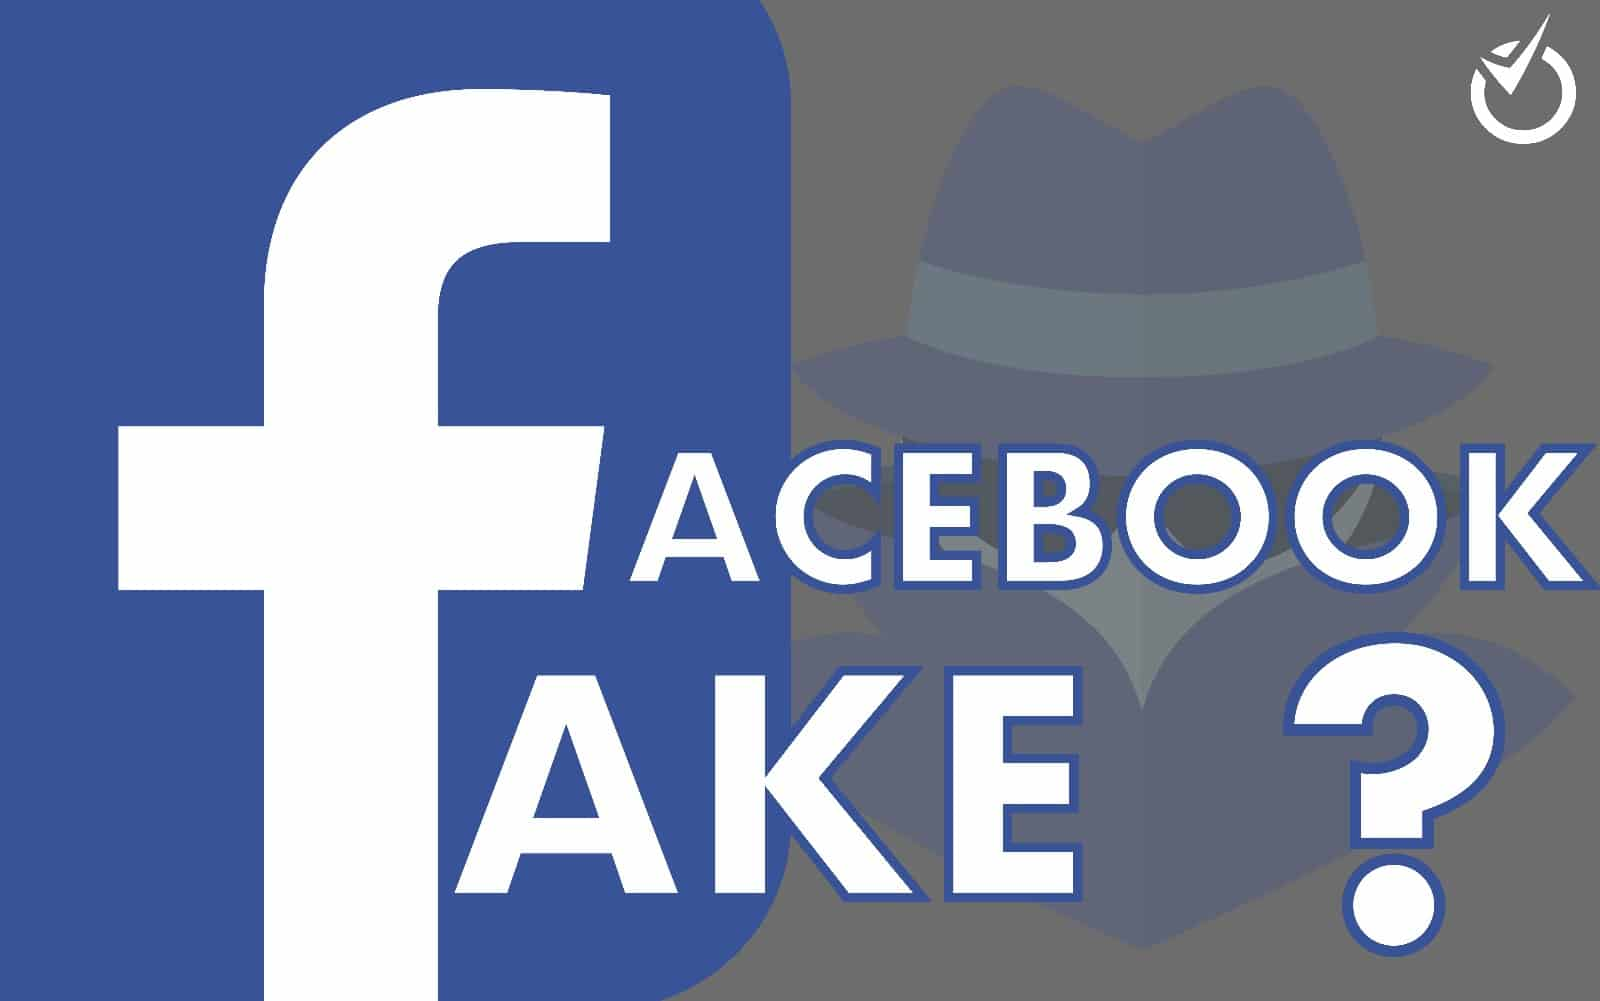 Facebook fake triche publicites webmarketing